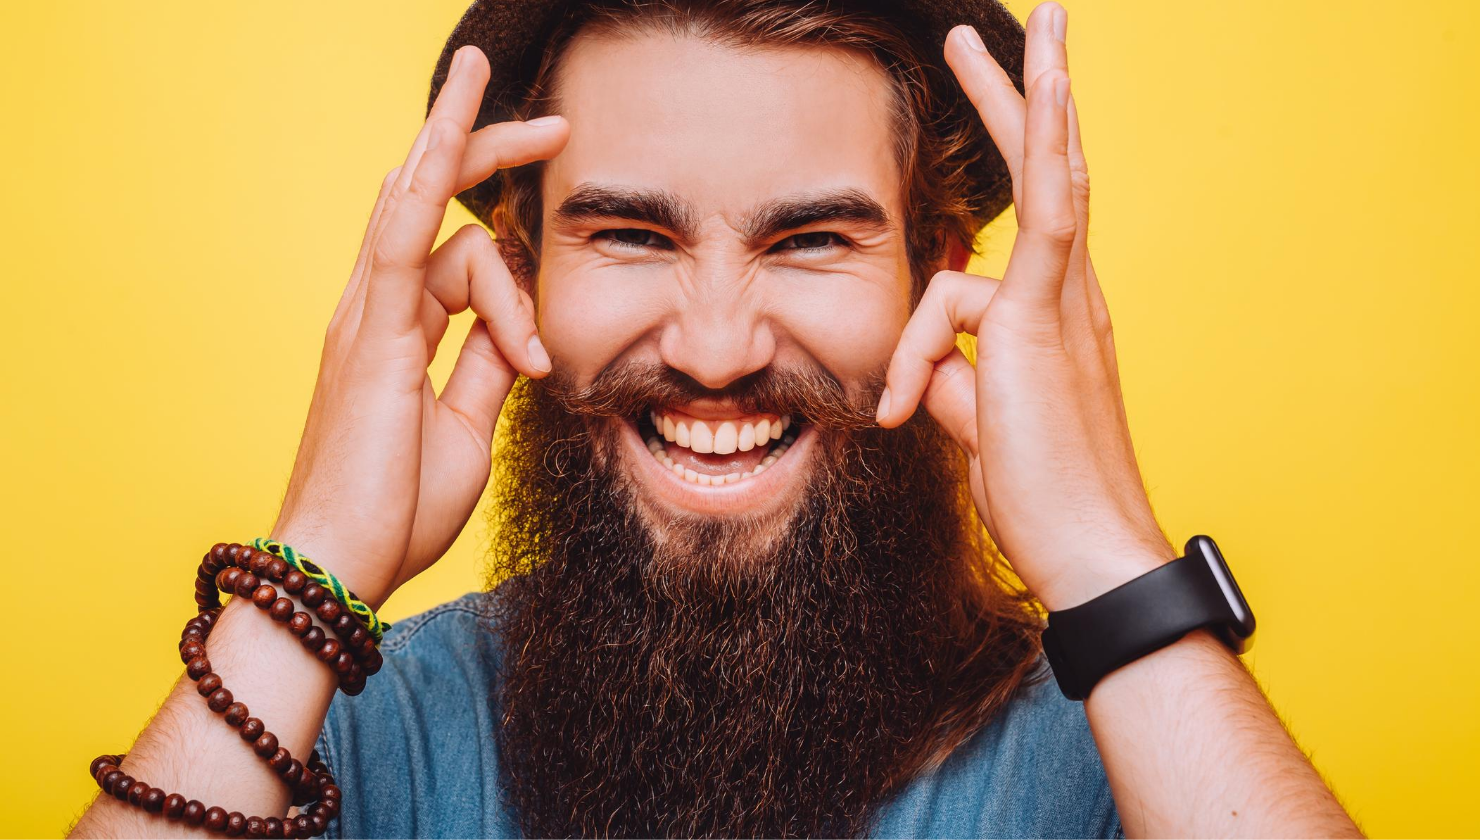 Featured Listing: Beard Lifestyle Brand